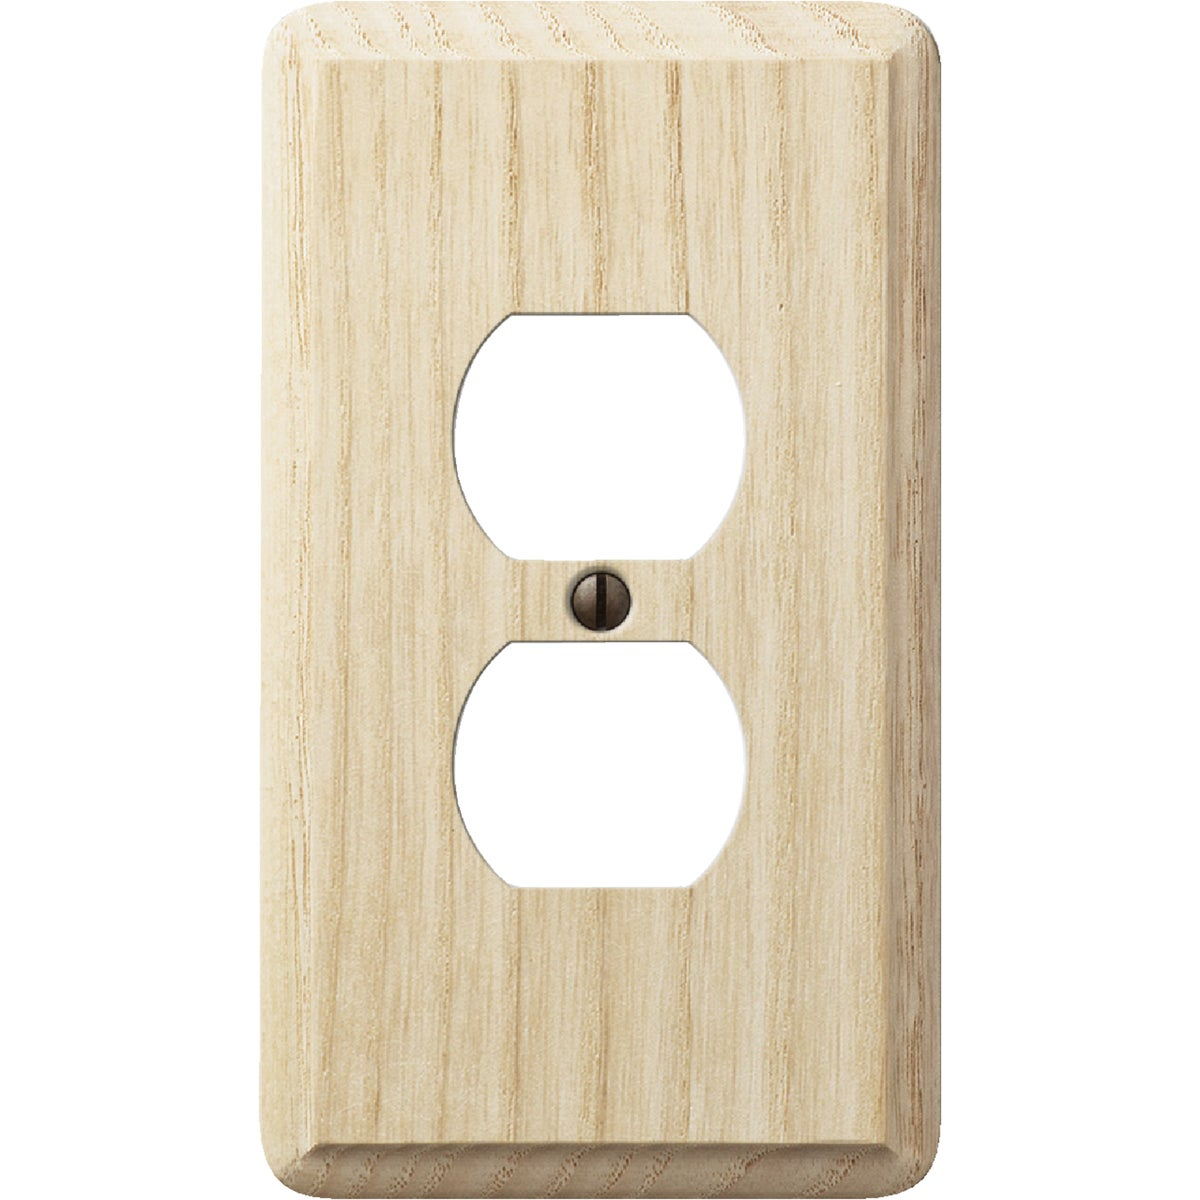 ASH OUTLET WALL PLATE